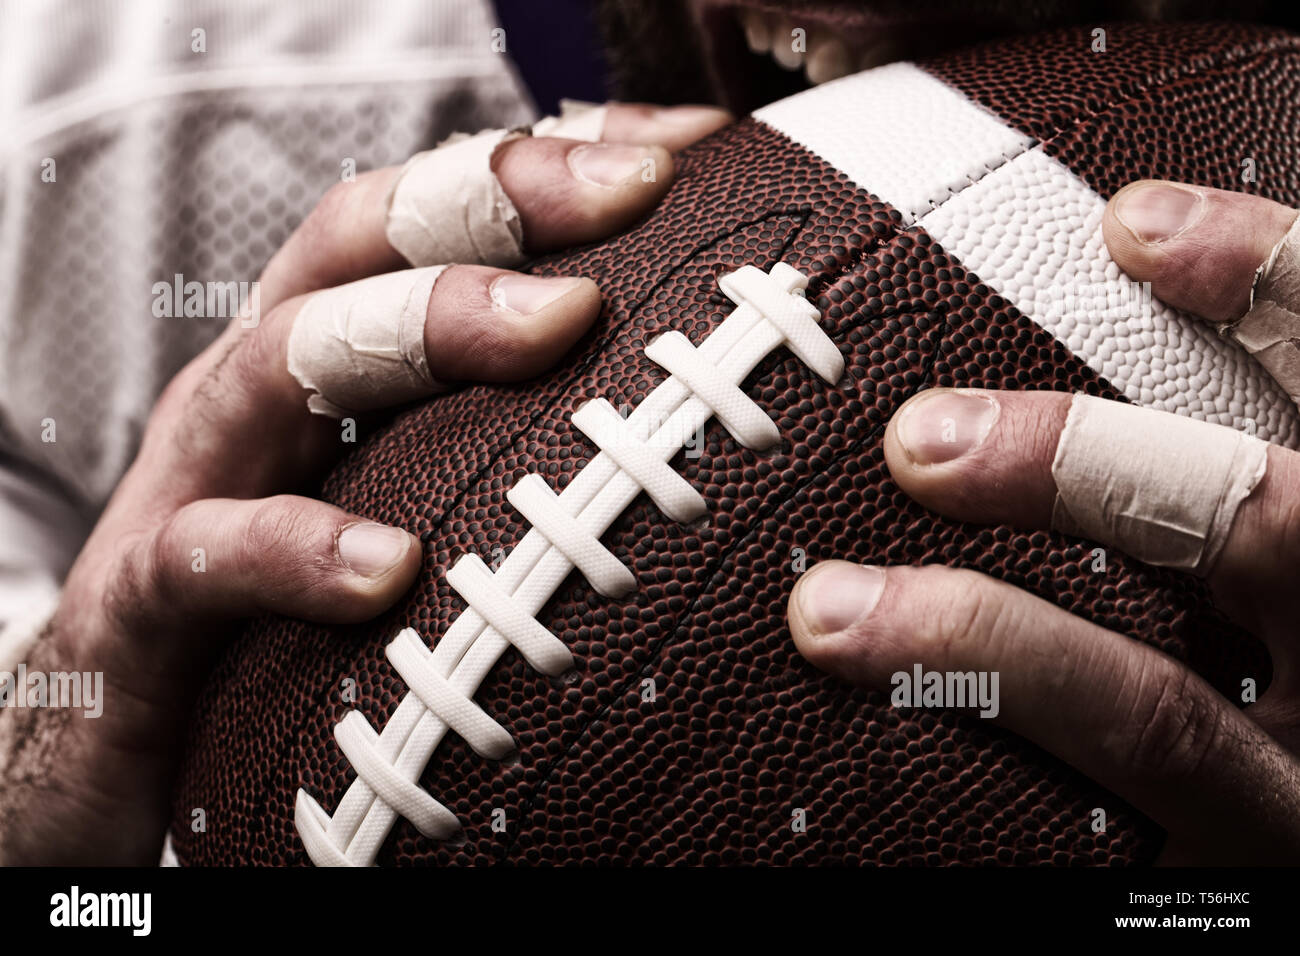 Football player with a ball in the hands, close up - Stock Image